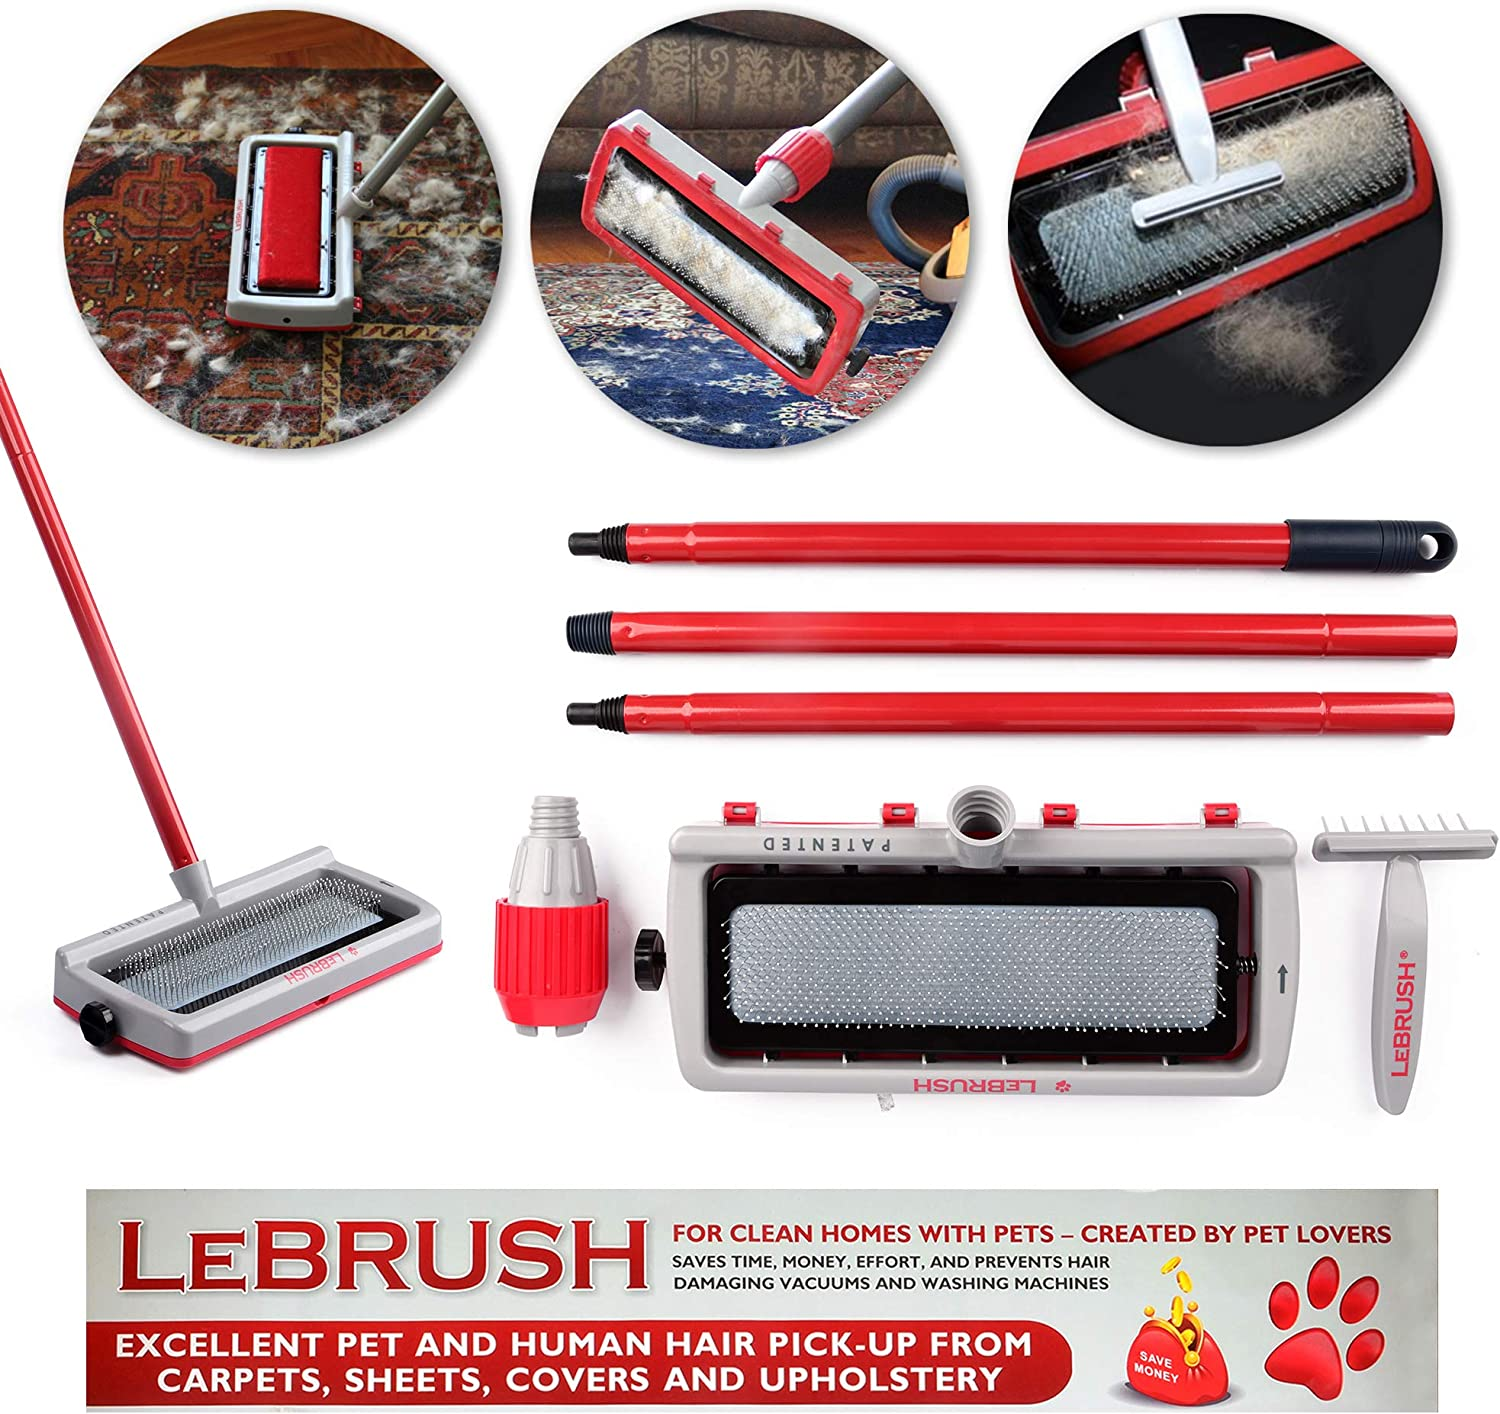 LeBrush Universal Pet Dog Cat Hair Remover Brush Broom Tool, Multi-Functional Carpet & Fabric Cleaning Broom Brush Tool for Picking up Cat, Dog, Pet Hair Fur with Vacuum Cleaner Adapter